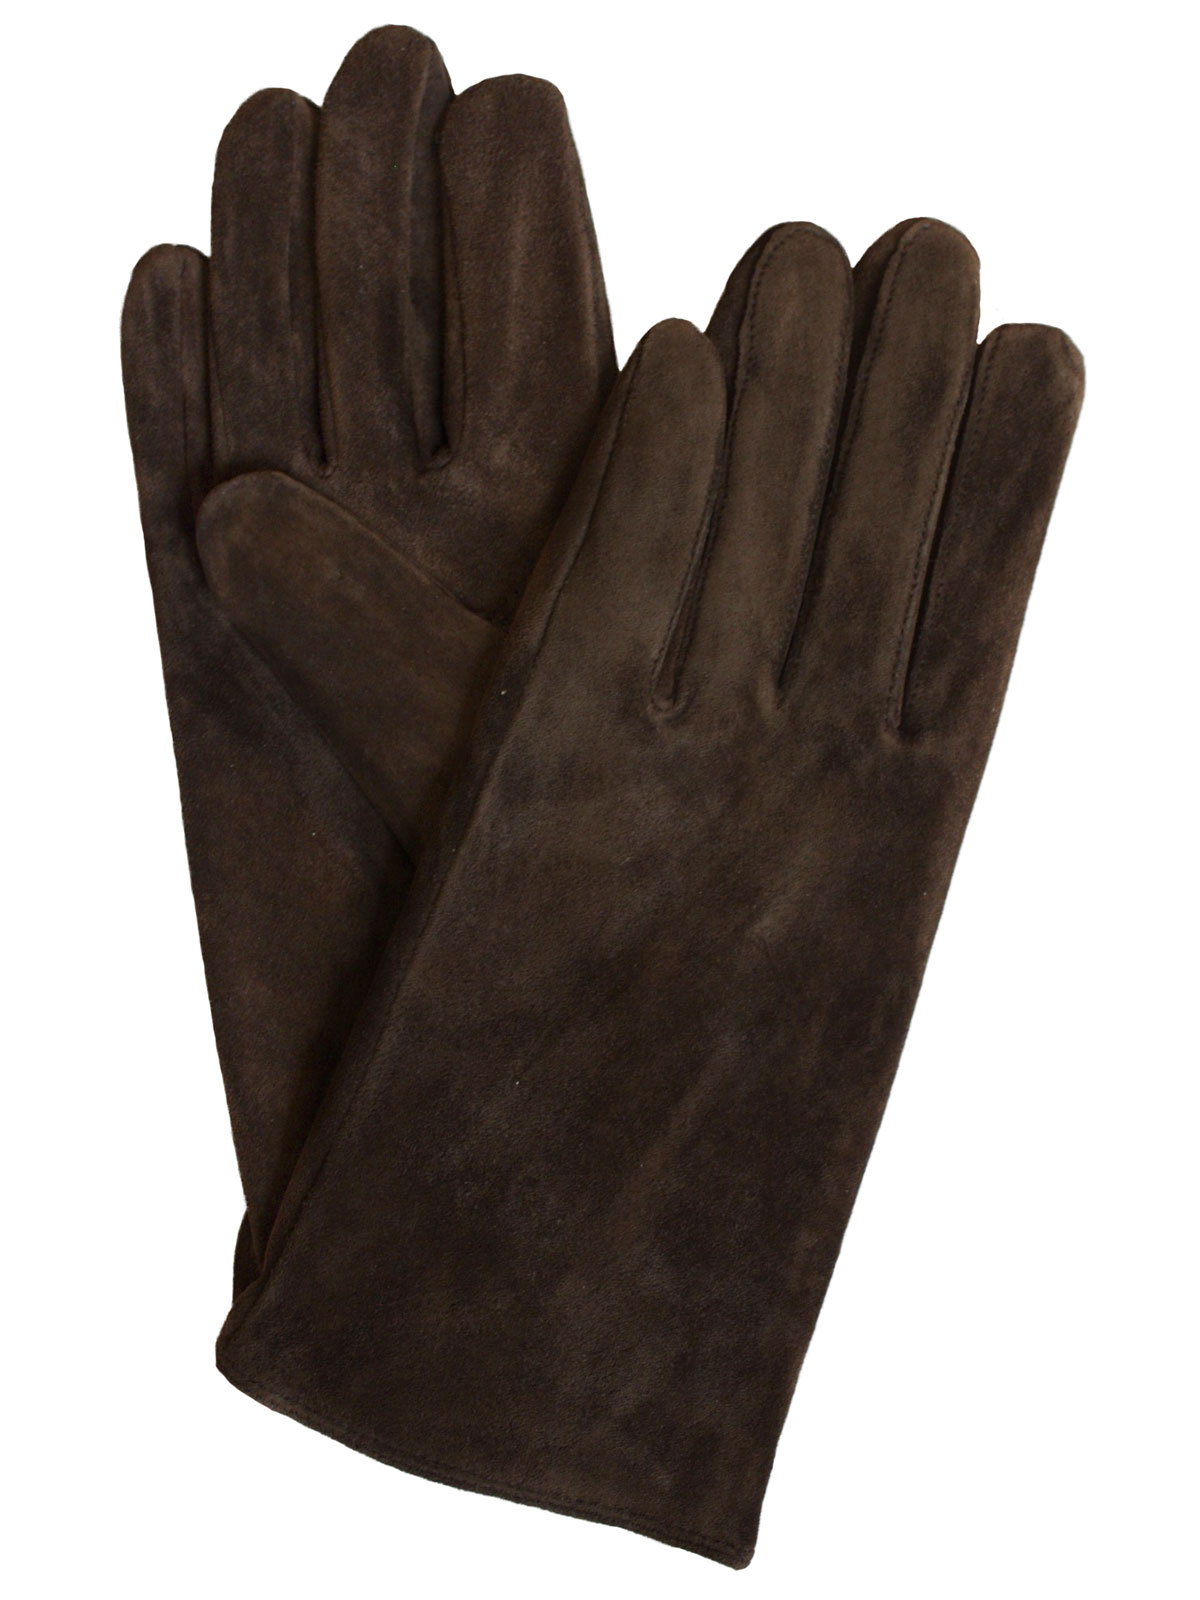 Women's Gloves: Free Shipping on orders over $45 at jelly555.ml - Your Online Gloves Store! Get 5% in rewards with Club O!